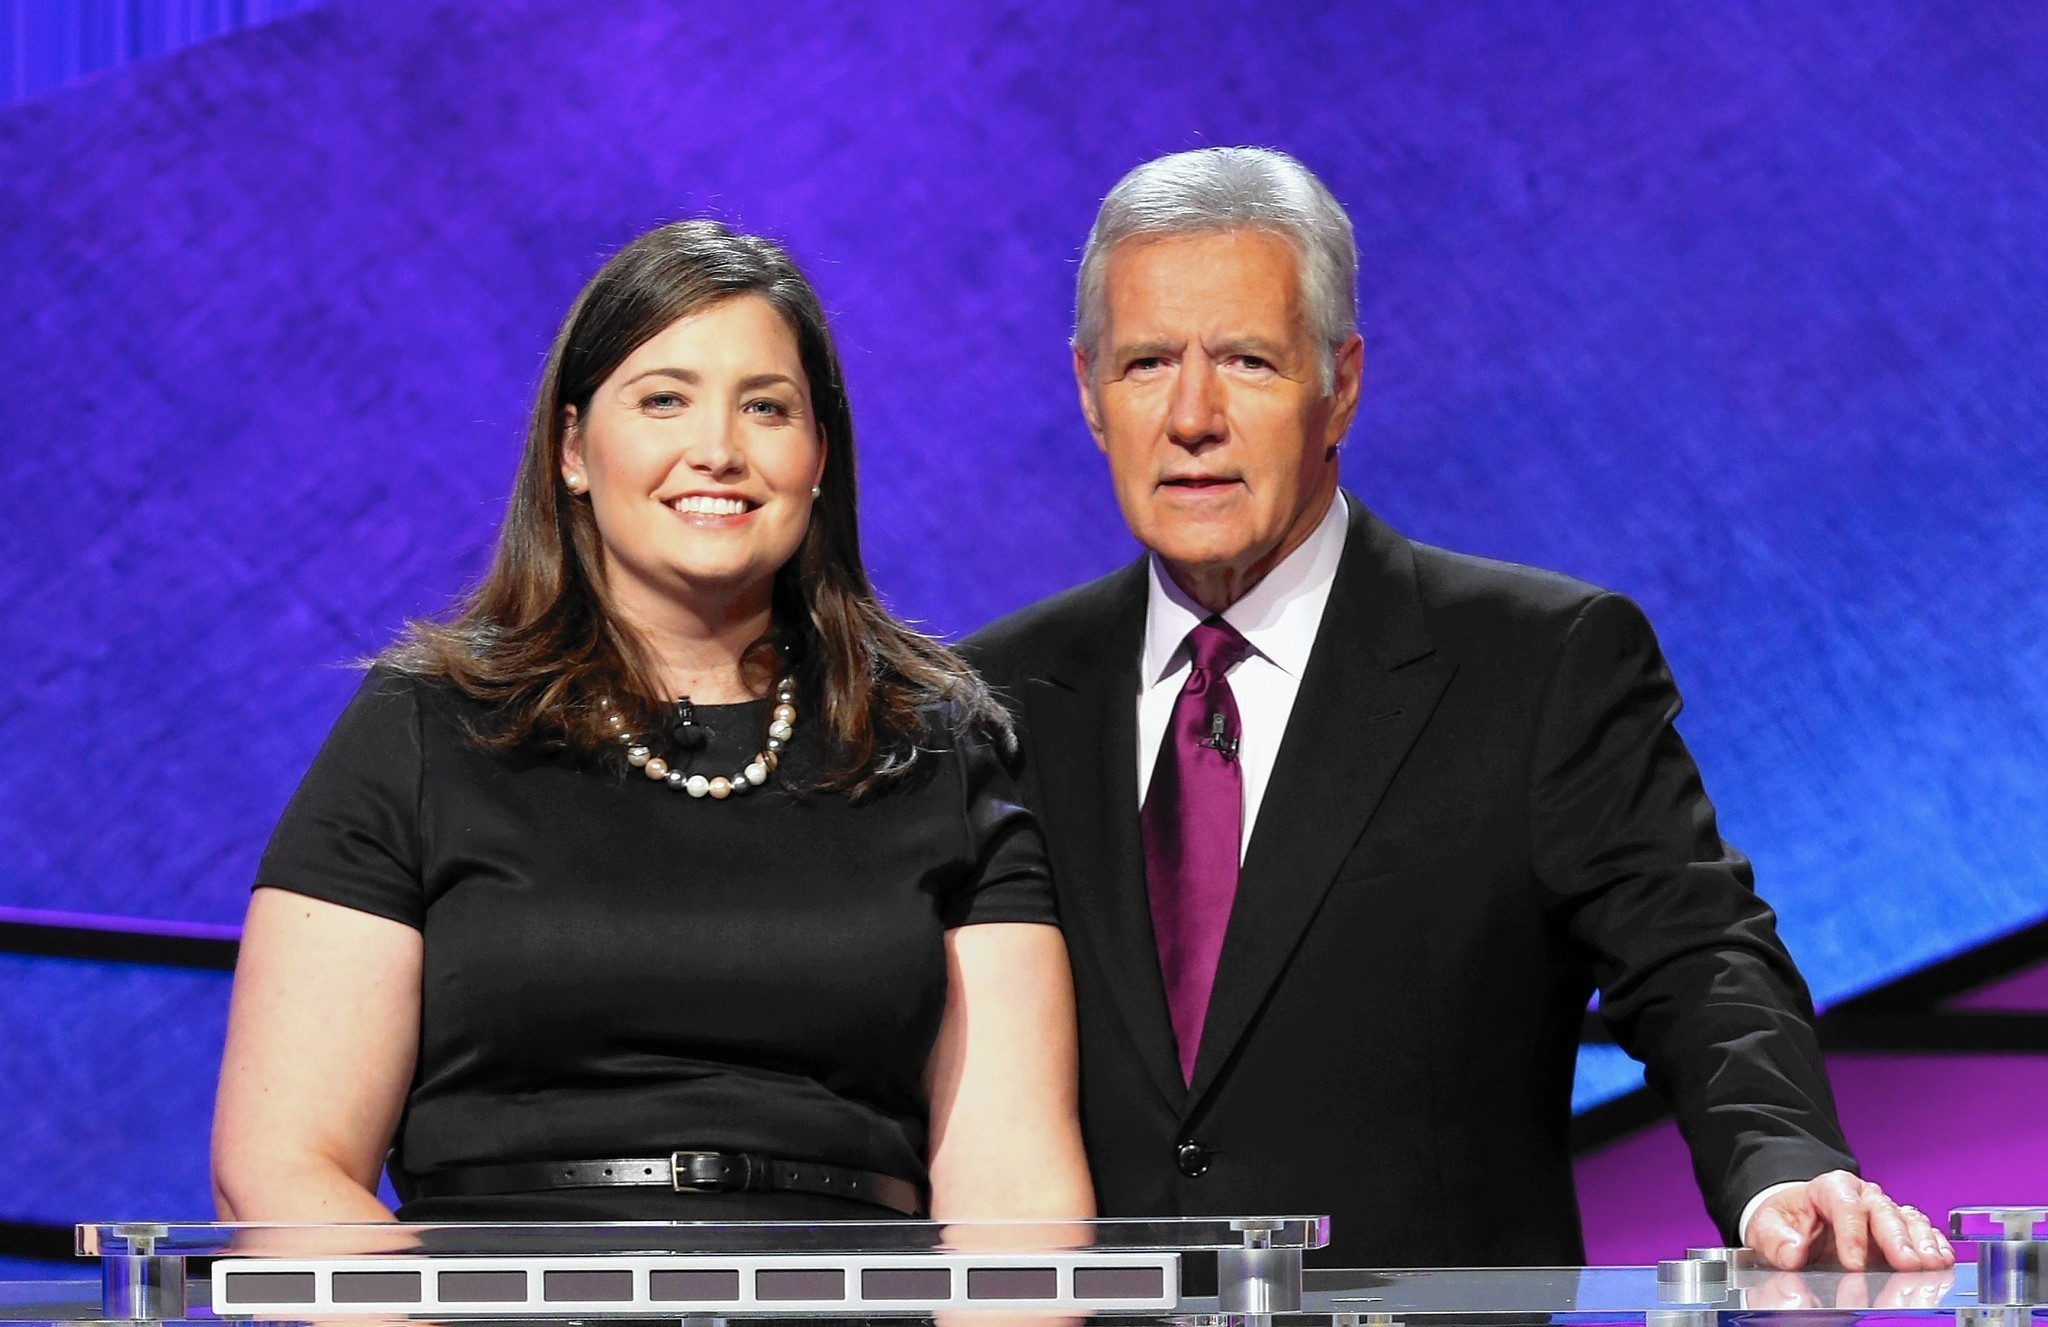 Awkward Final Jeopardy with one contestant is painful to watch March122015 episode